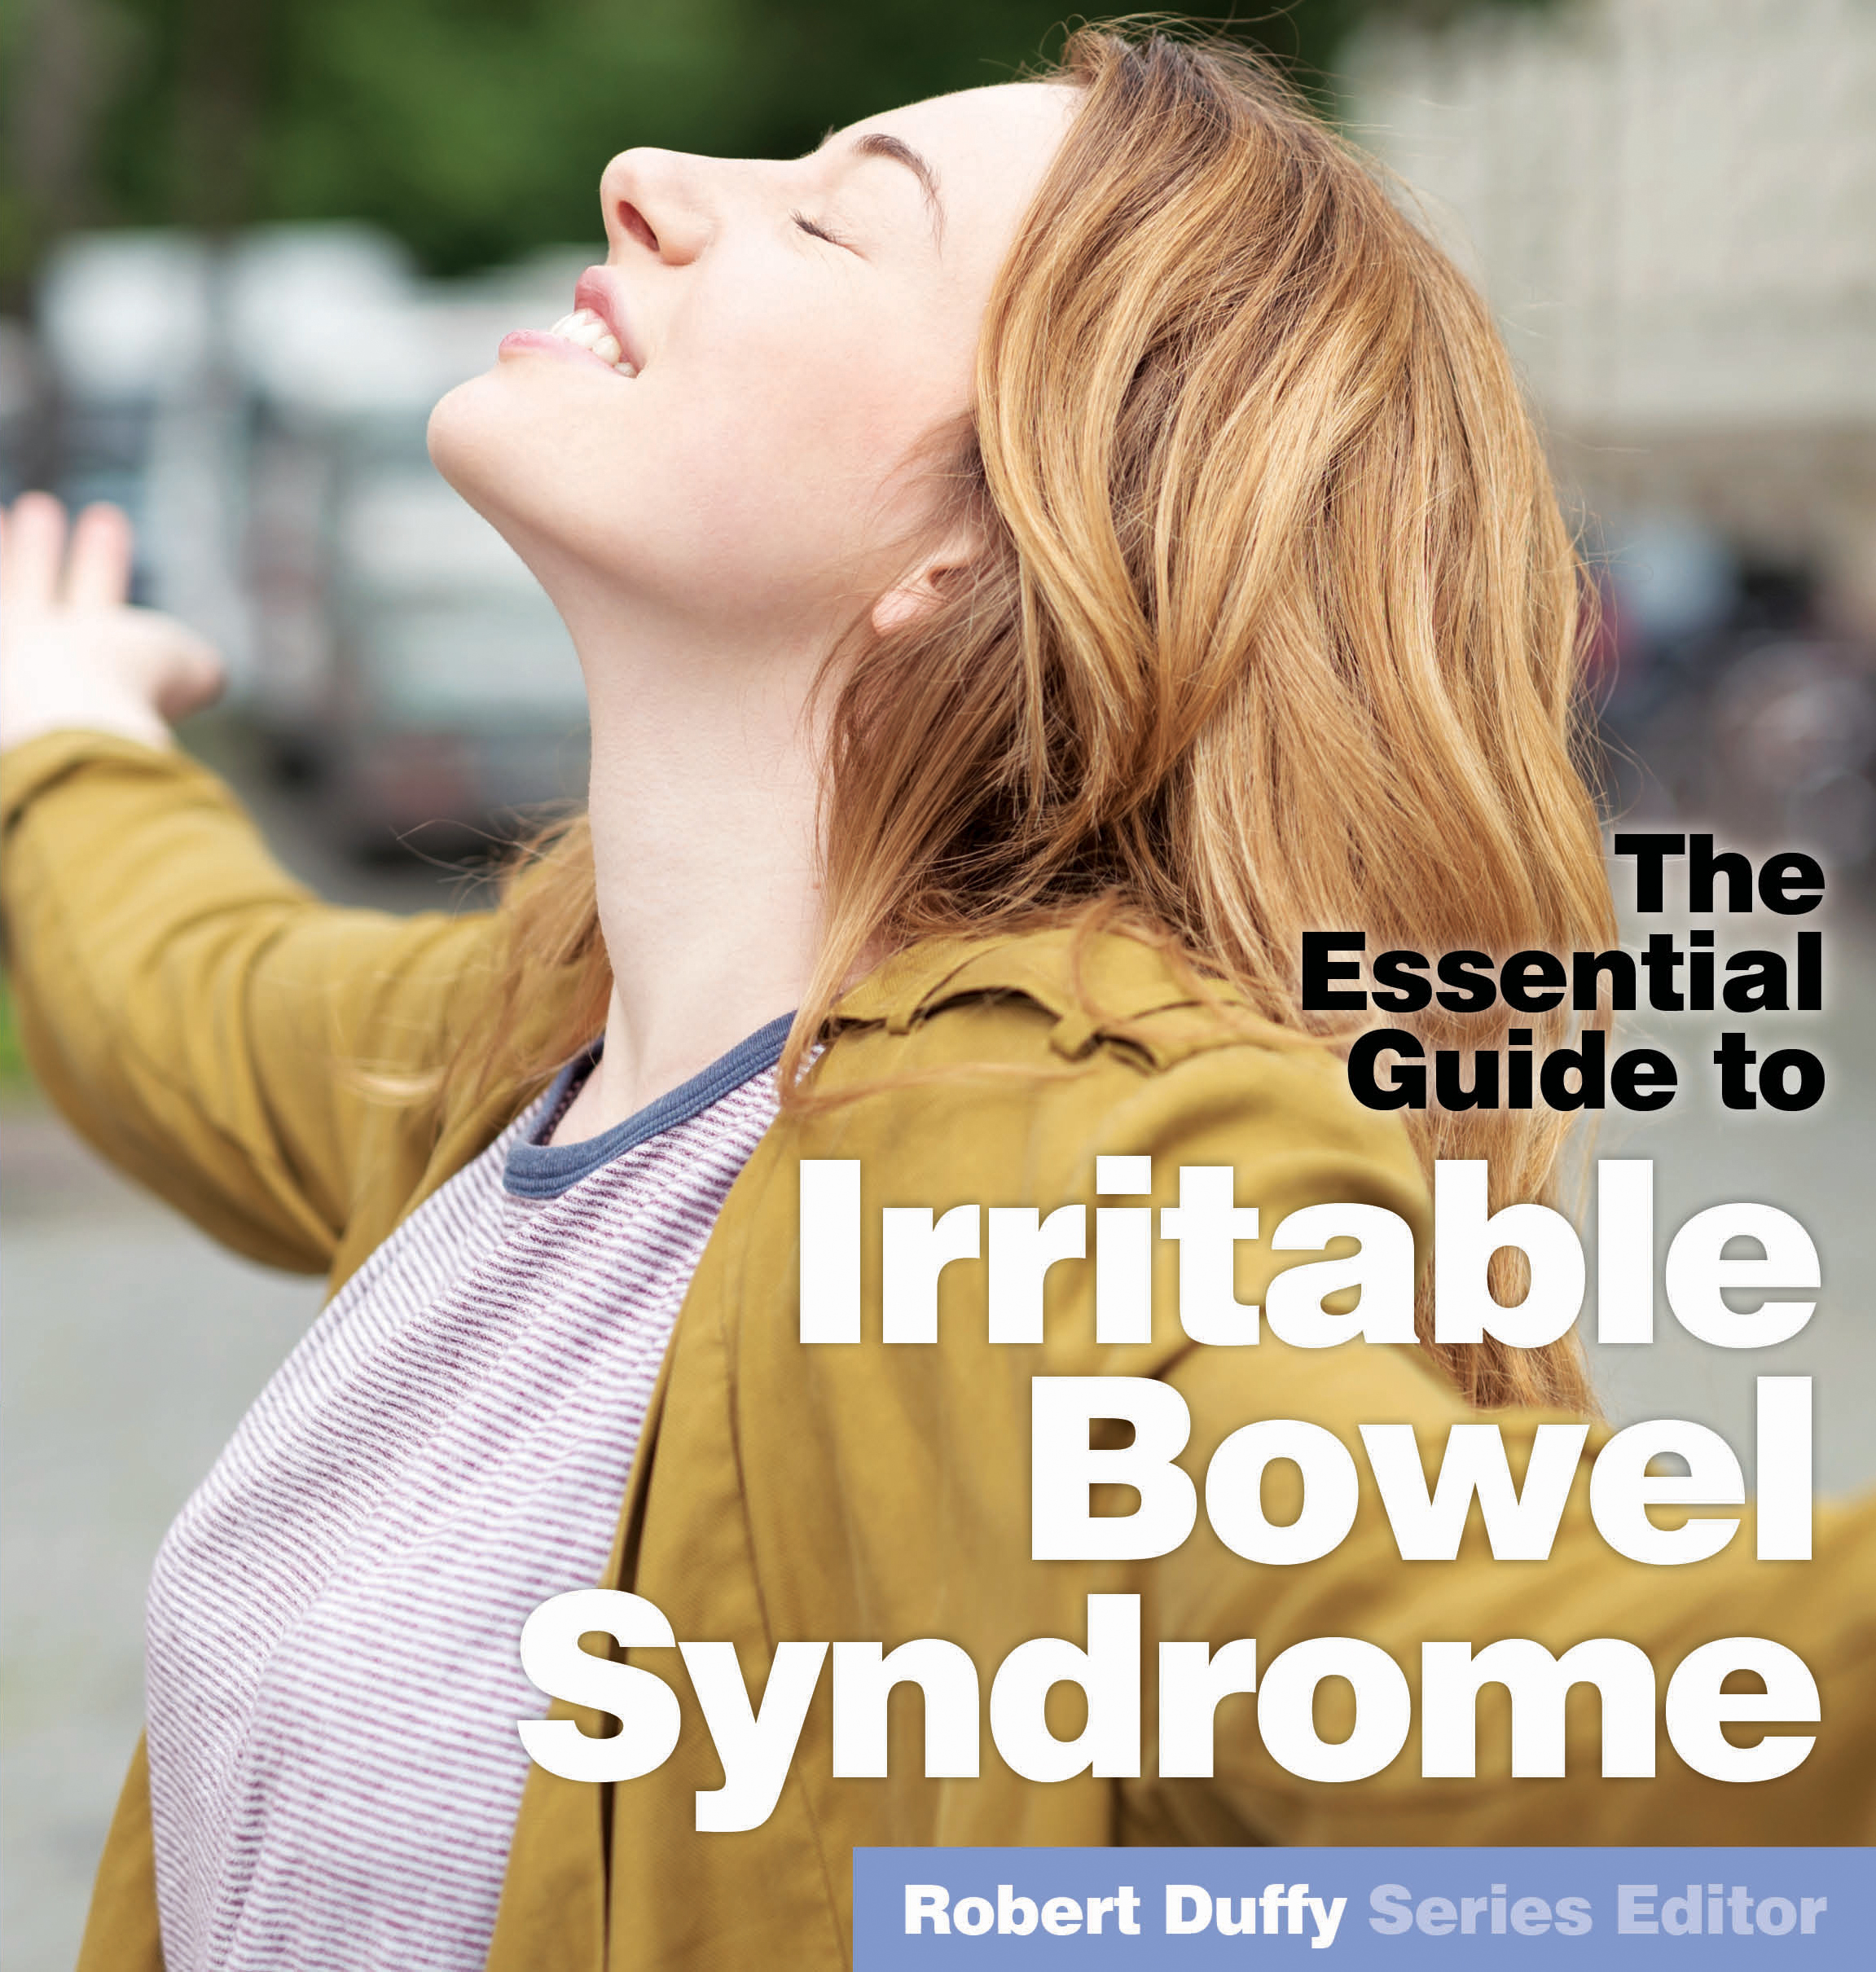 The Essential Guide To IBS